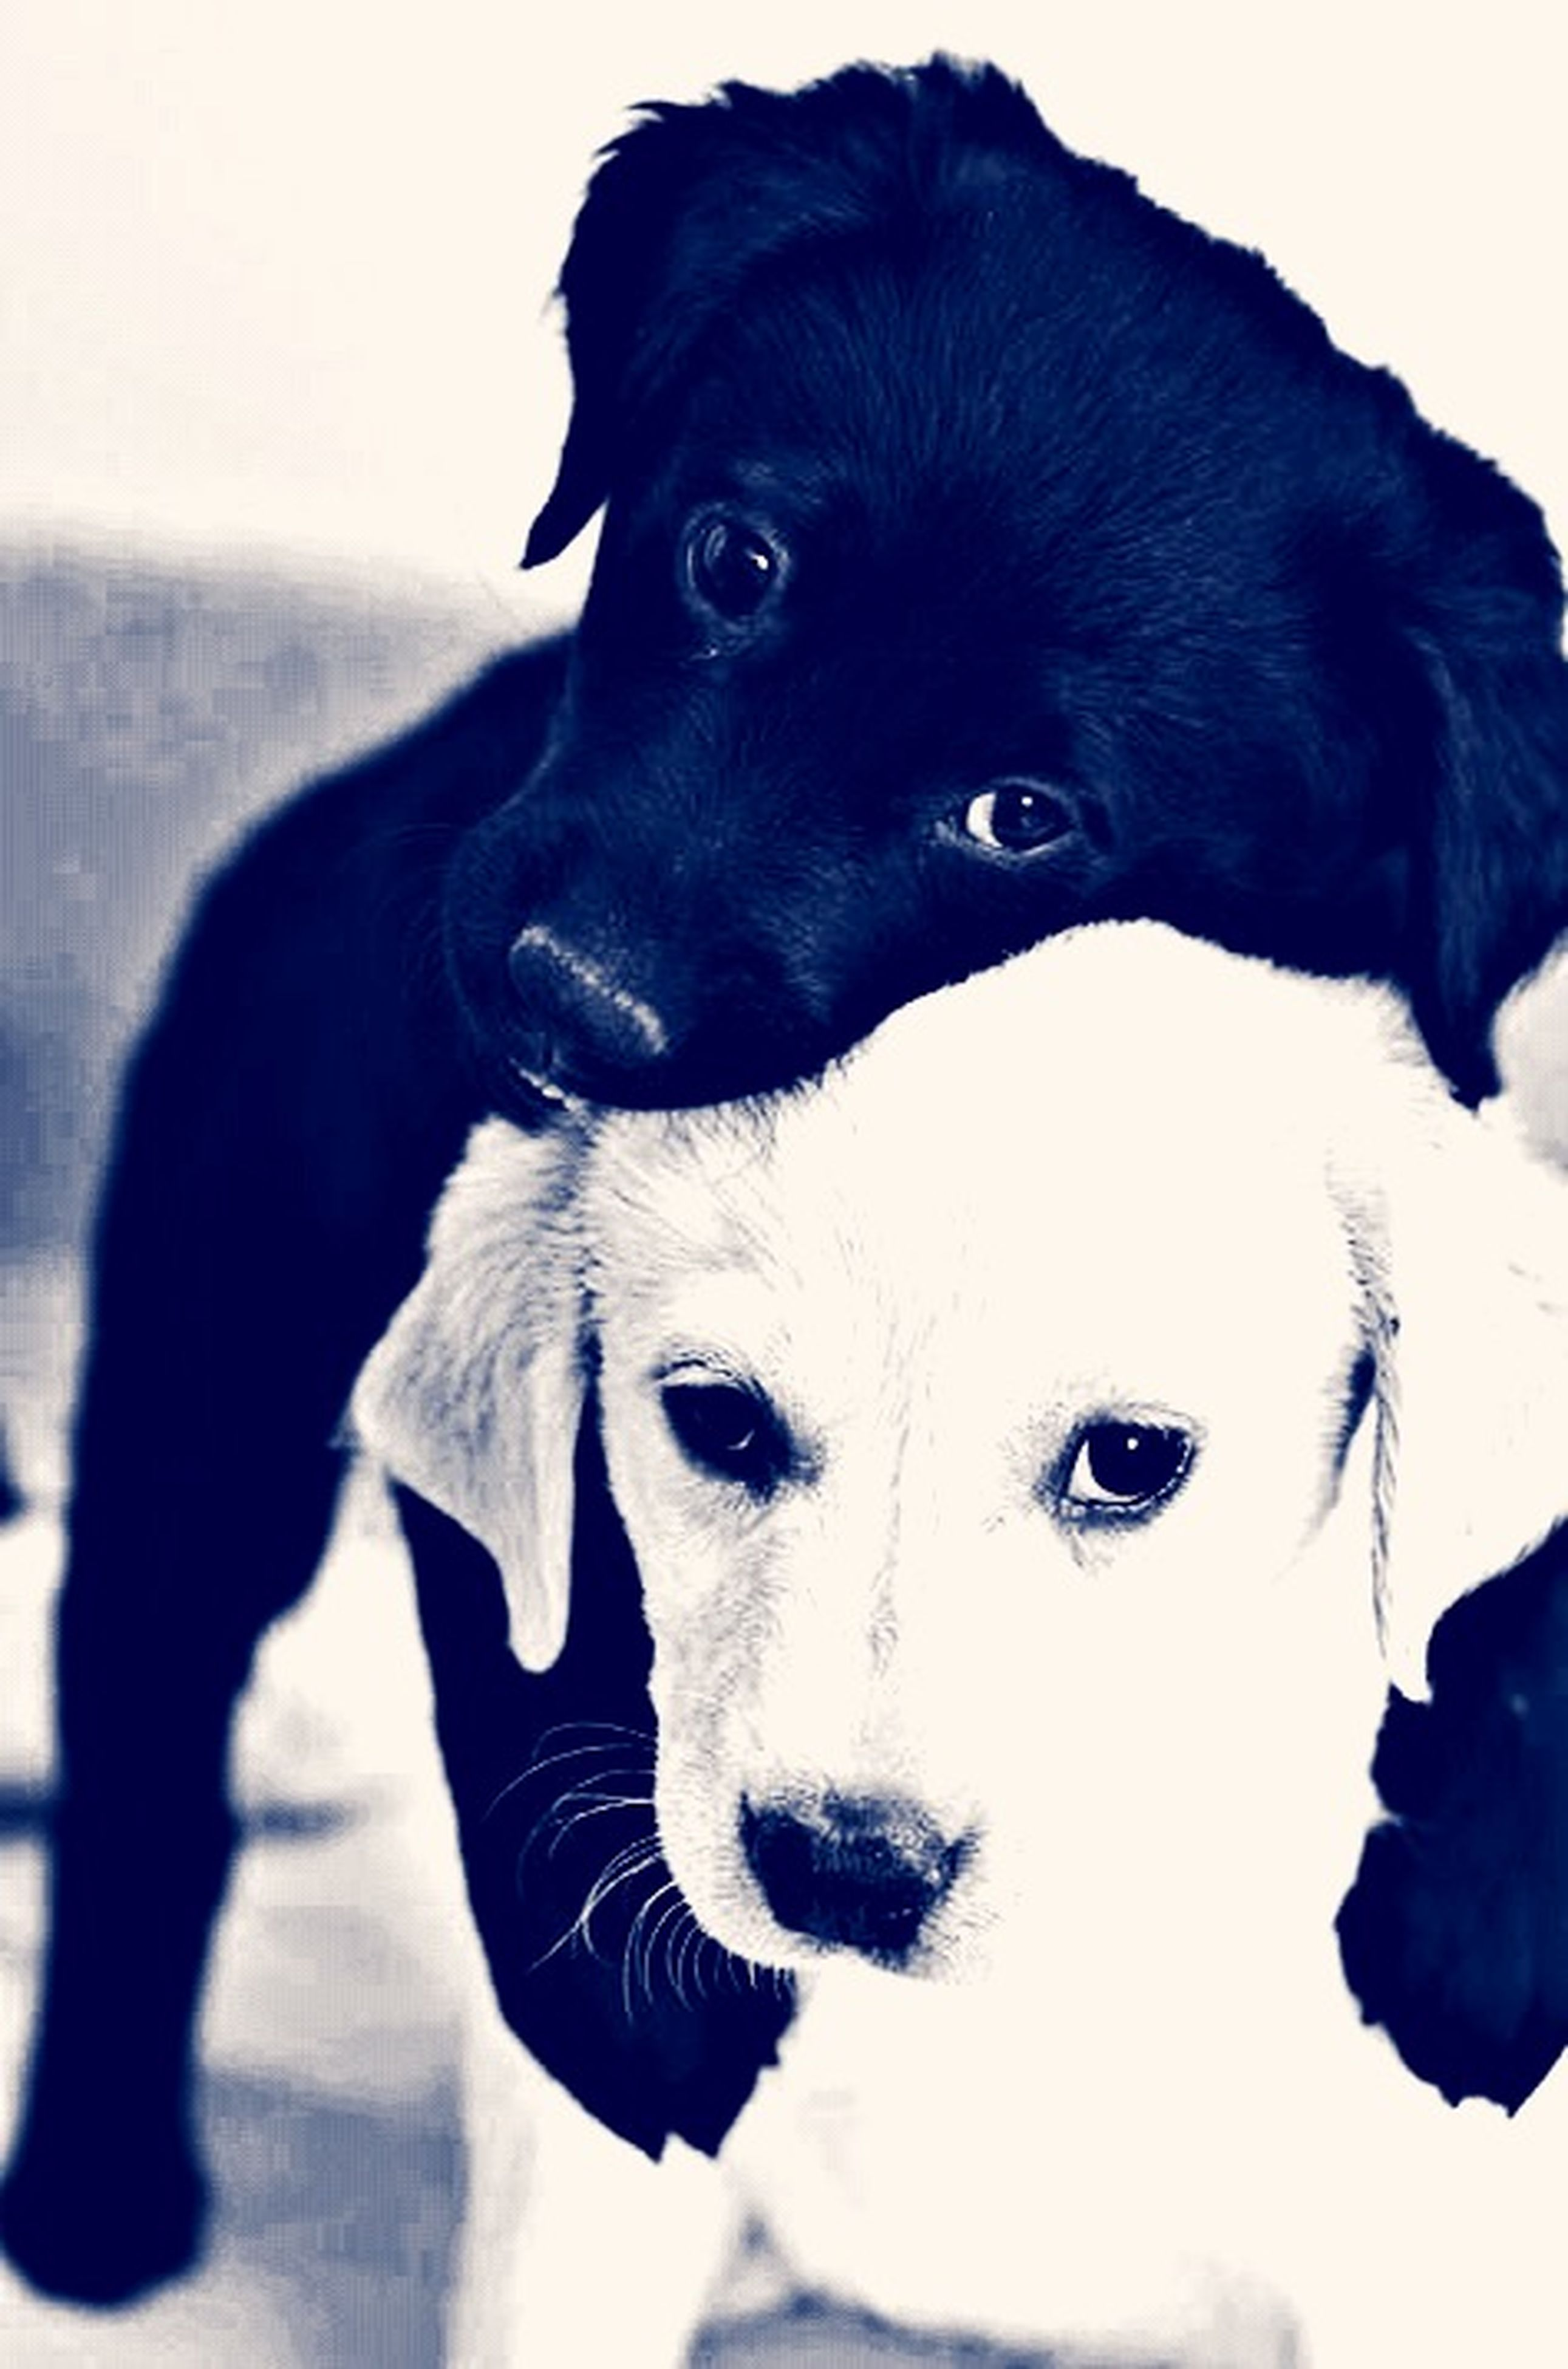 pets, dog, domestic animals, looking at camera, portrait, one animal, animal themes, indoors, mammal, black color, close-up, animal head, front view, studio shot, staring, no people, home interior, black, white background